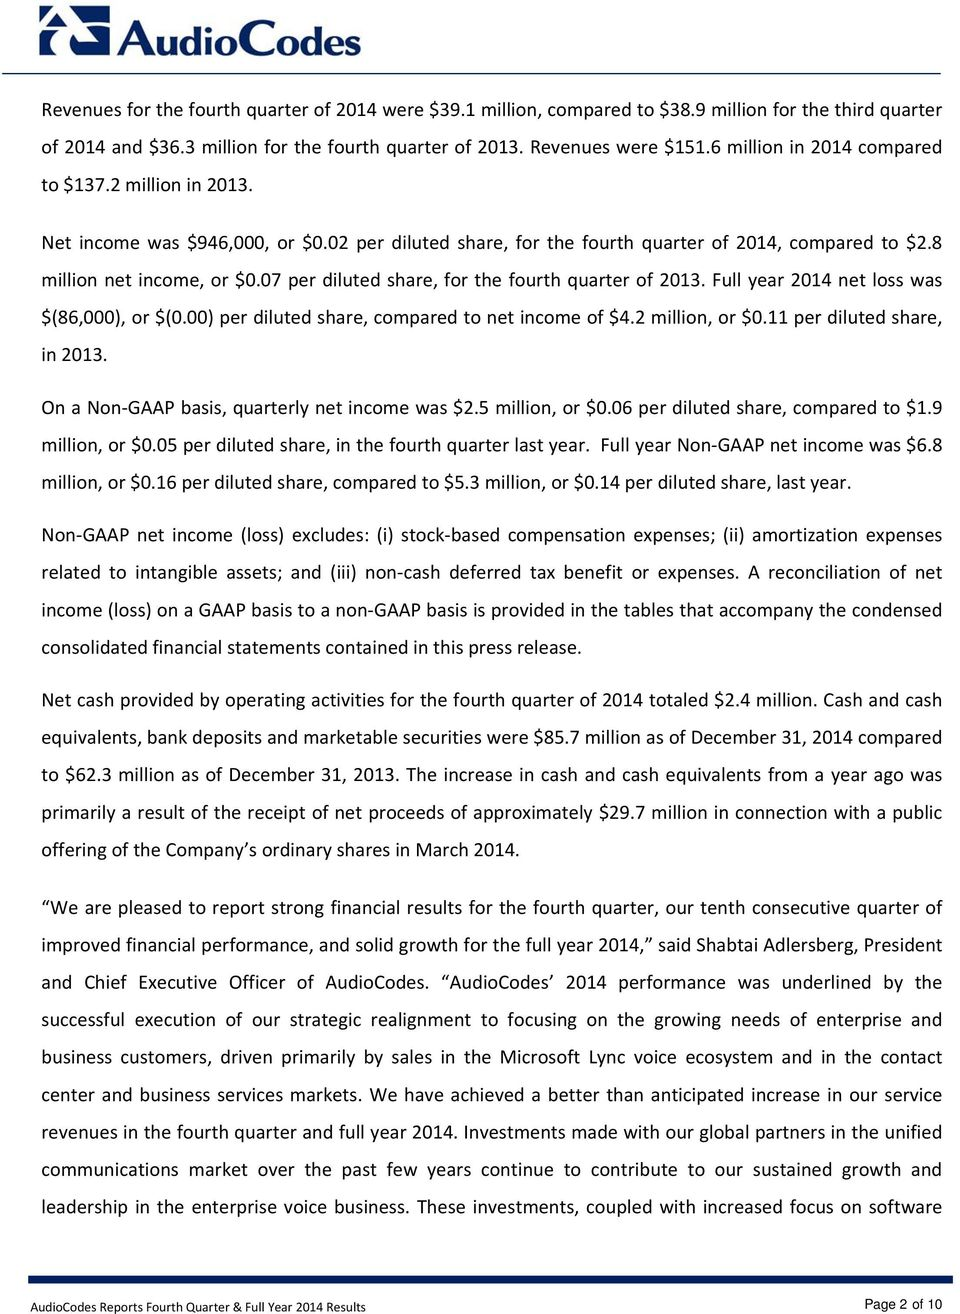 07 per diluted share, for the fourth quarter of 2013. Full year 2014 net loss was $(86,000), or $(0.00) per diluted share, compared to net income of $4.2 million, or $0.11 per diluted share, in 2013.